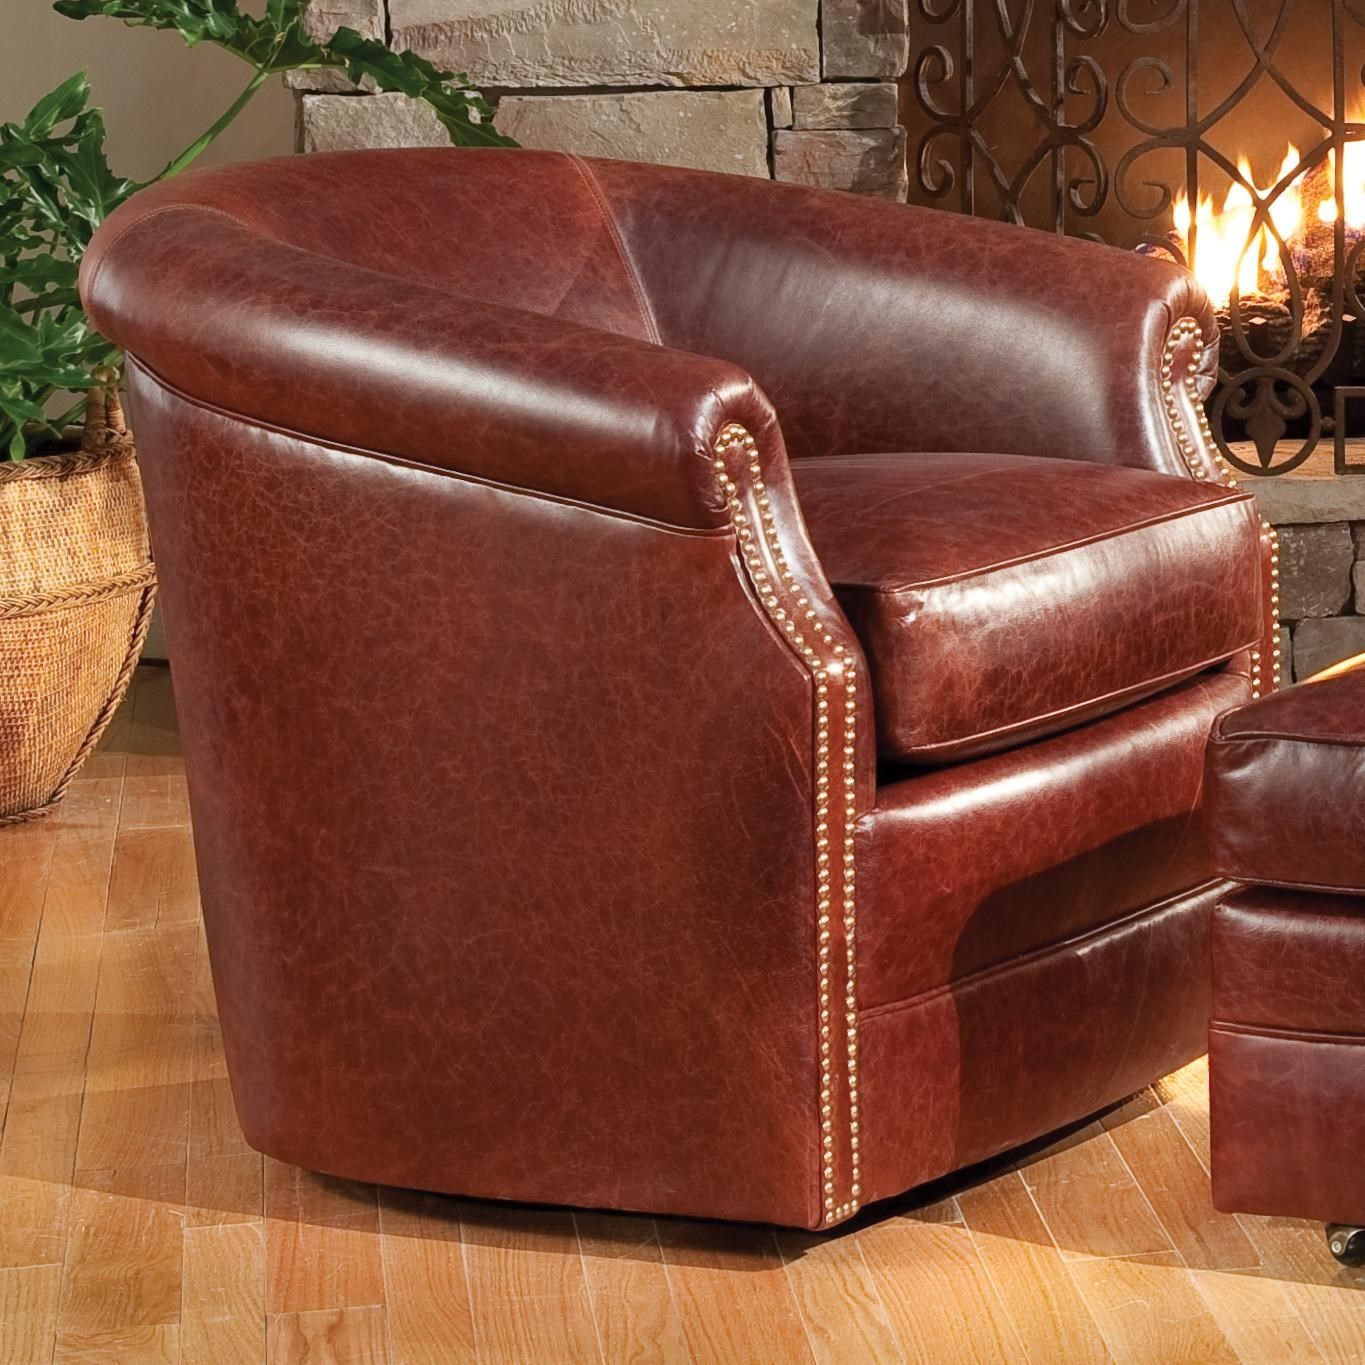 Barrel Swivel Chair with Rolled Arms